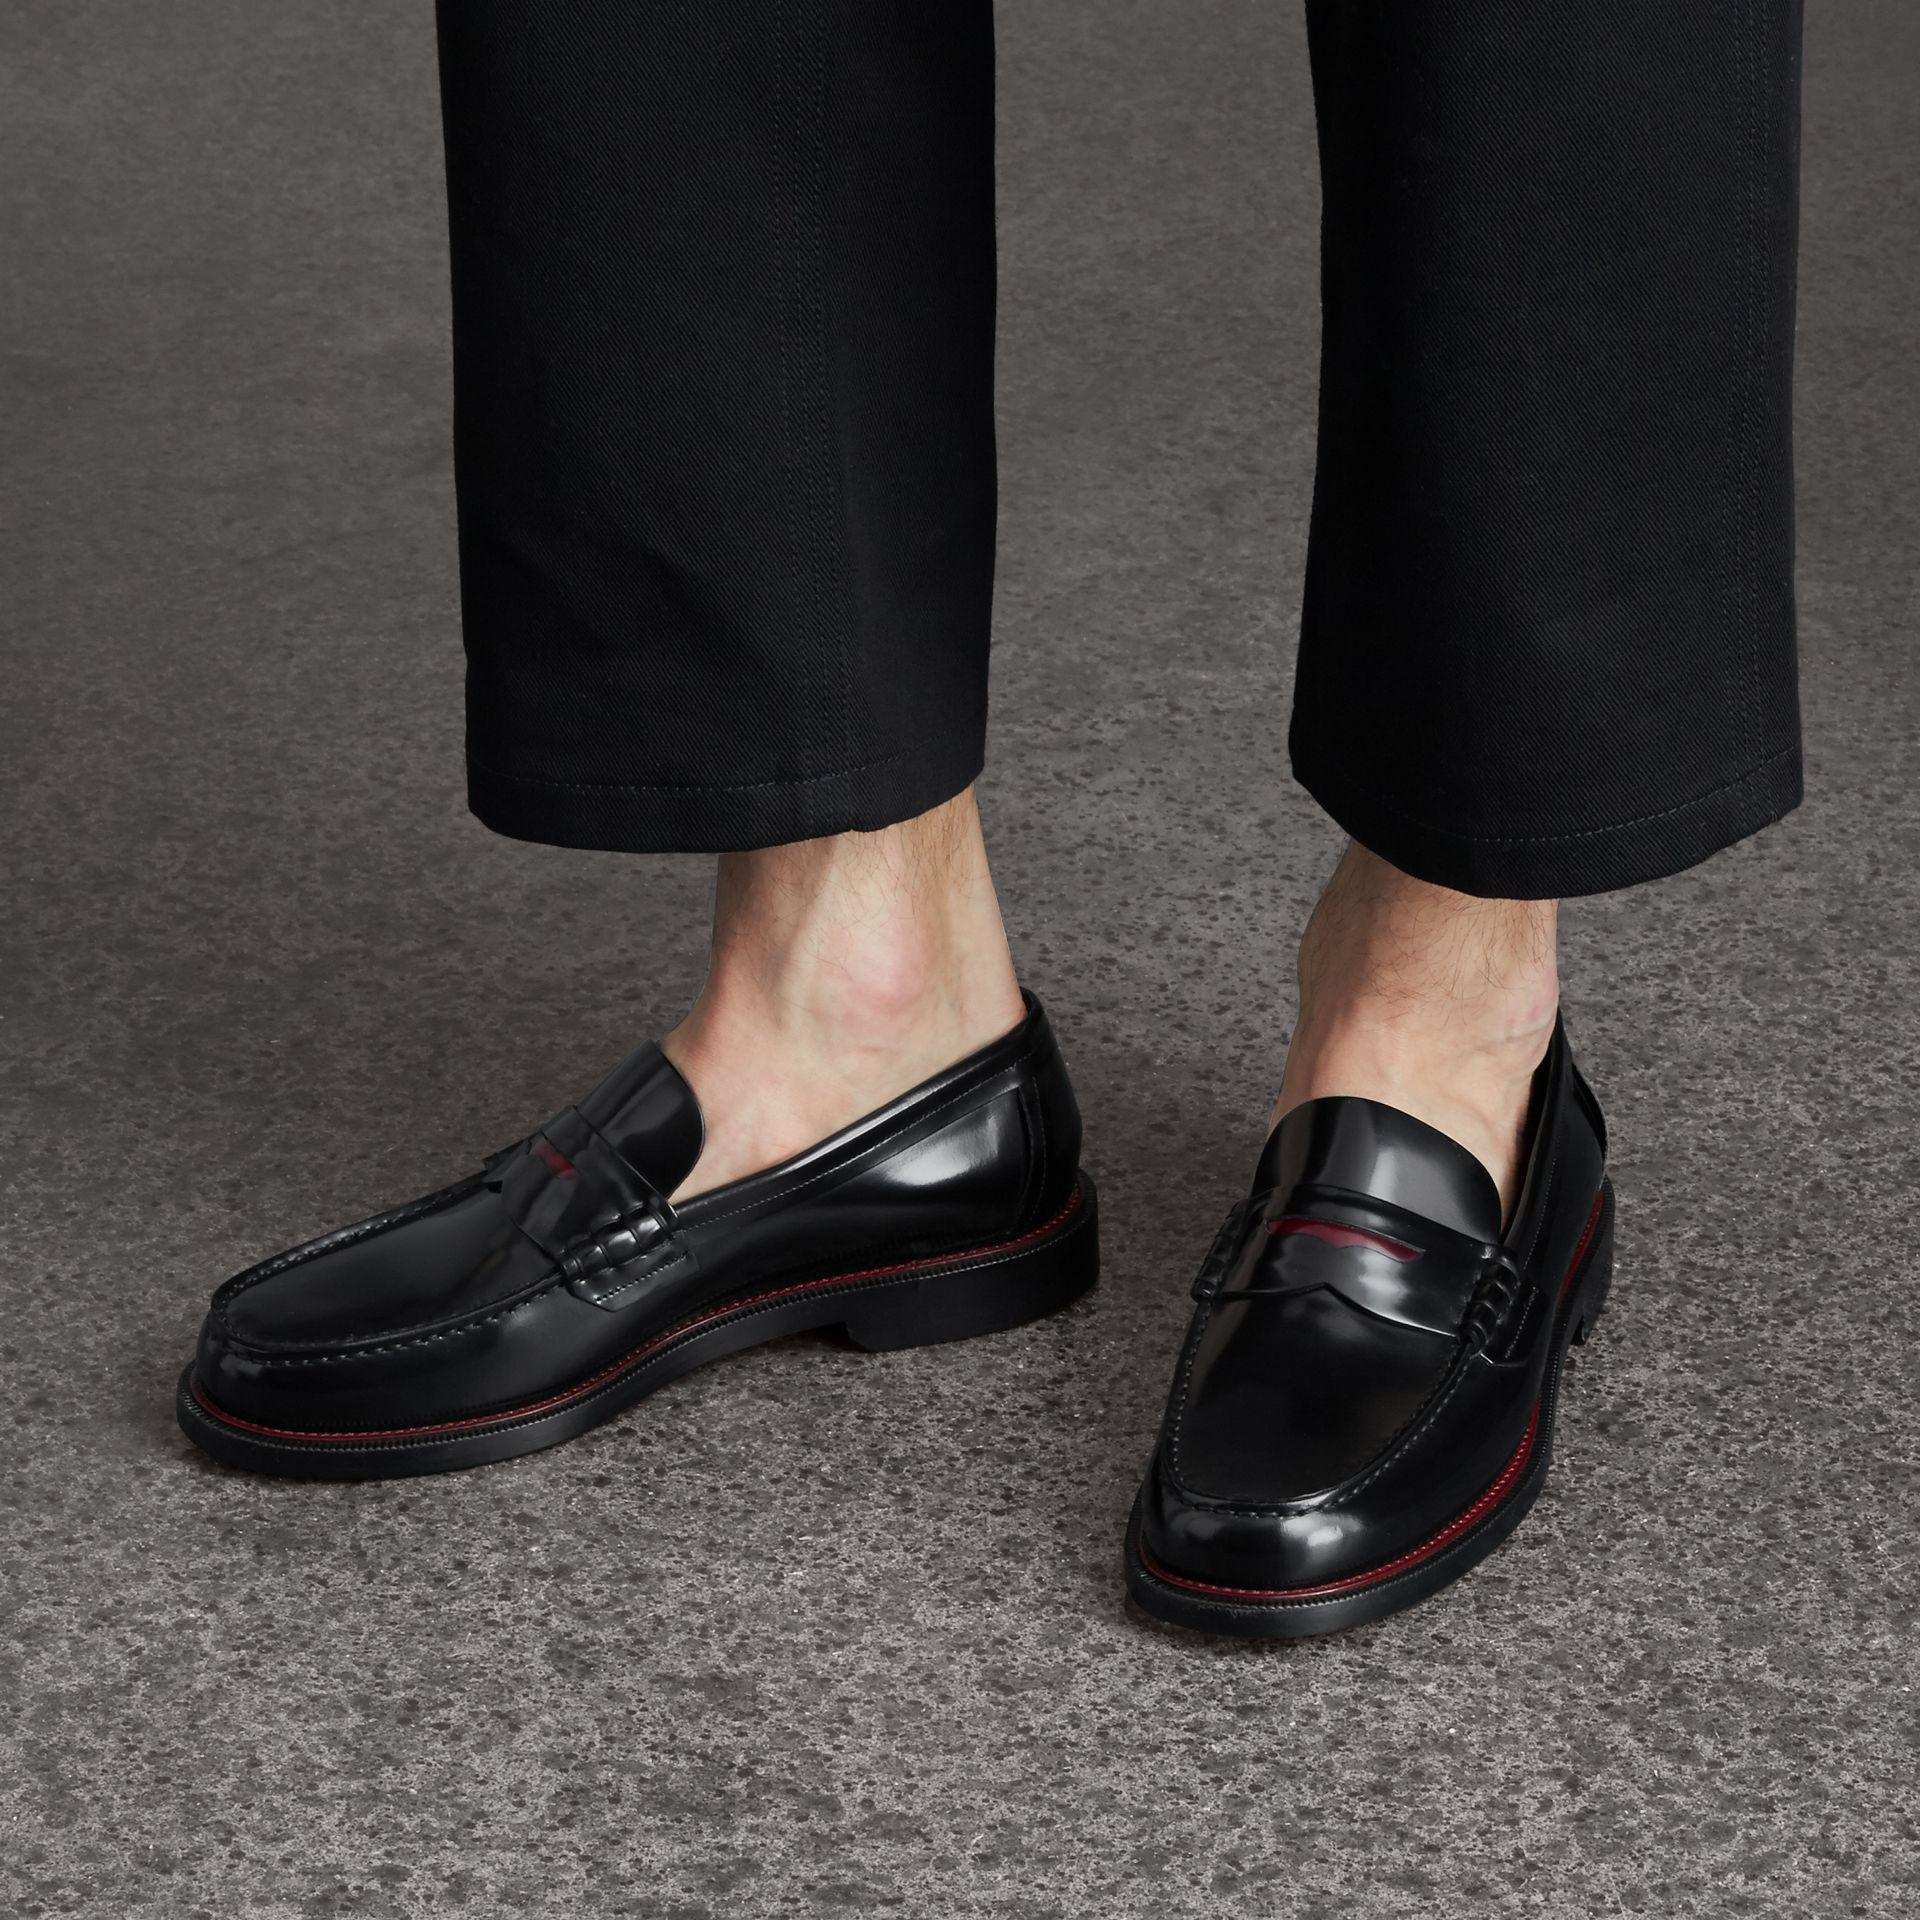 9d346d72b14 Lyst - Burberry Two-tone Leather Penny Loafers in Black for Men